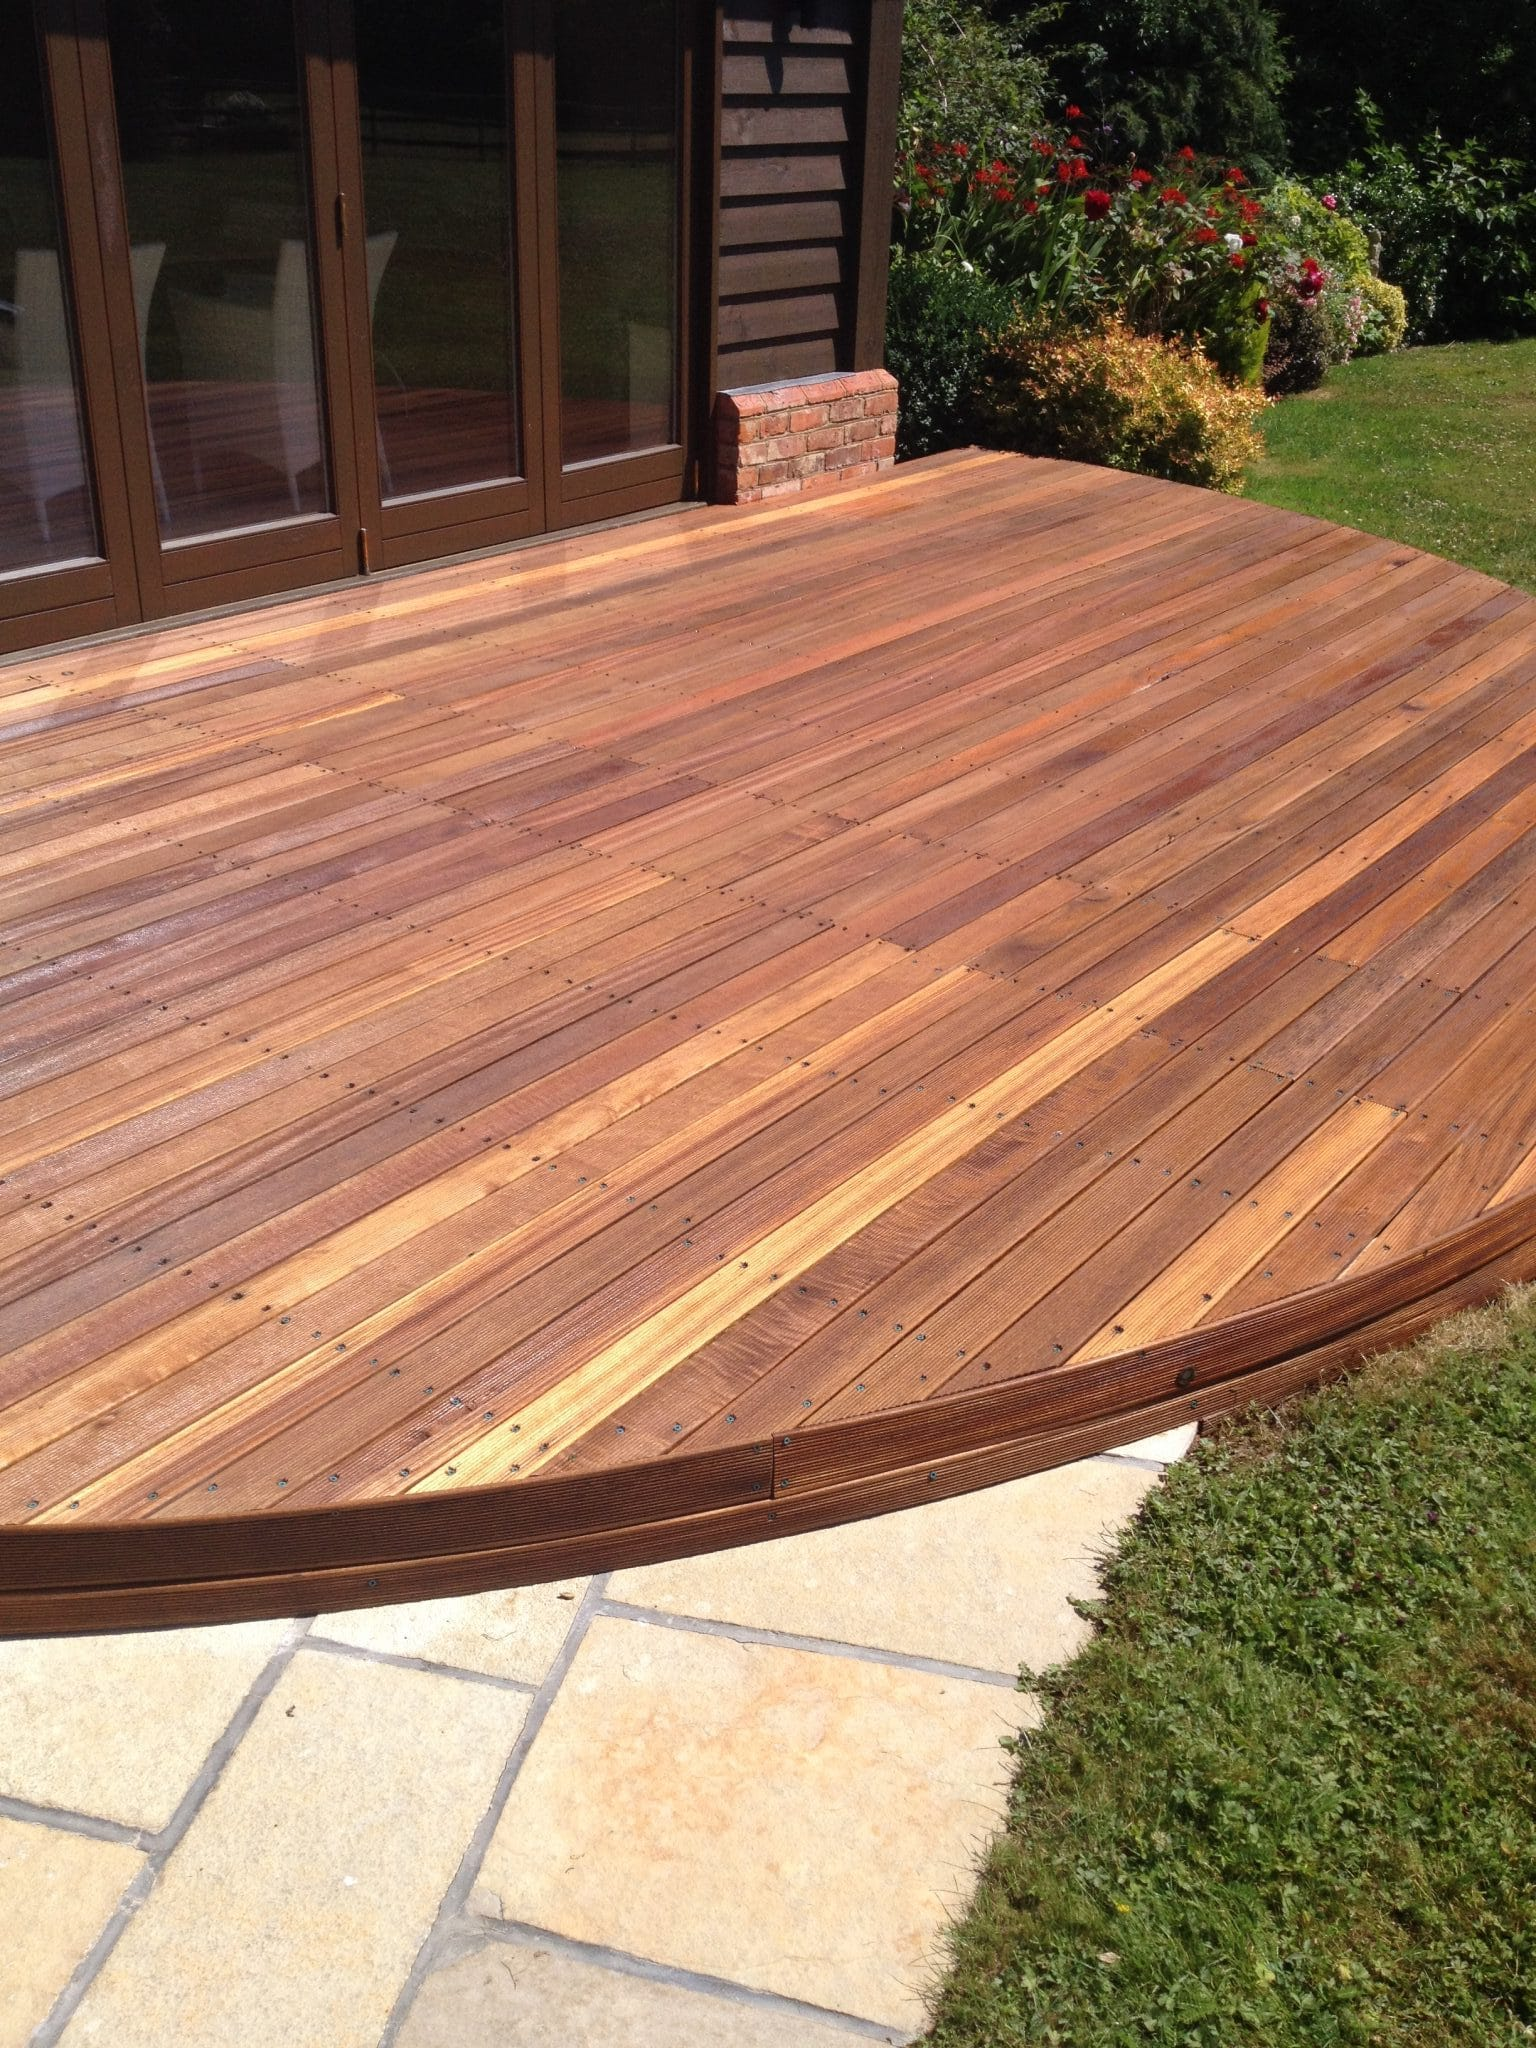 Balau Decking Restored Thanks To Owatrol Owatrol Direct